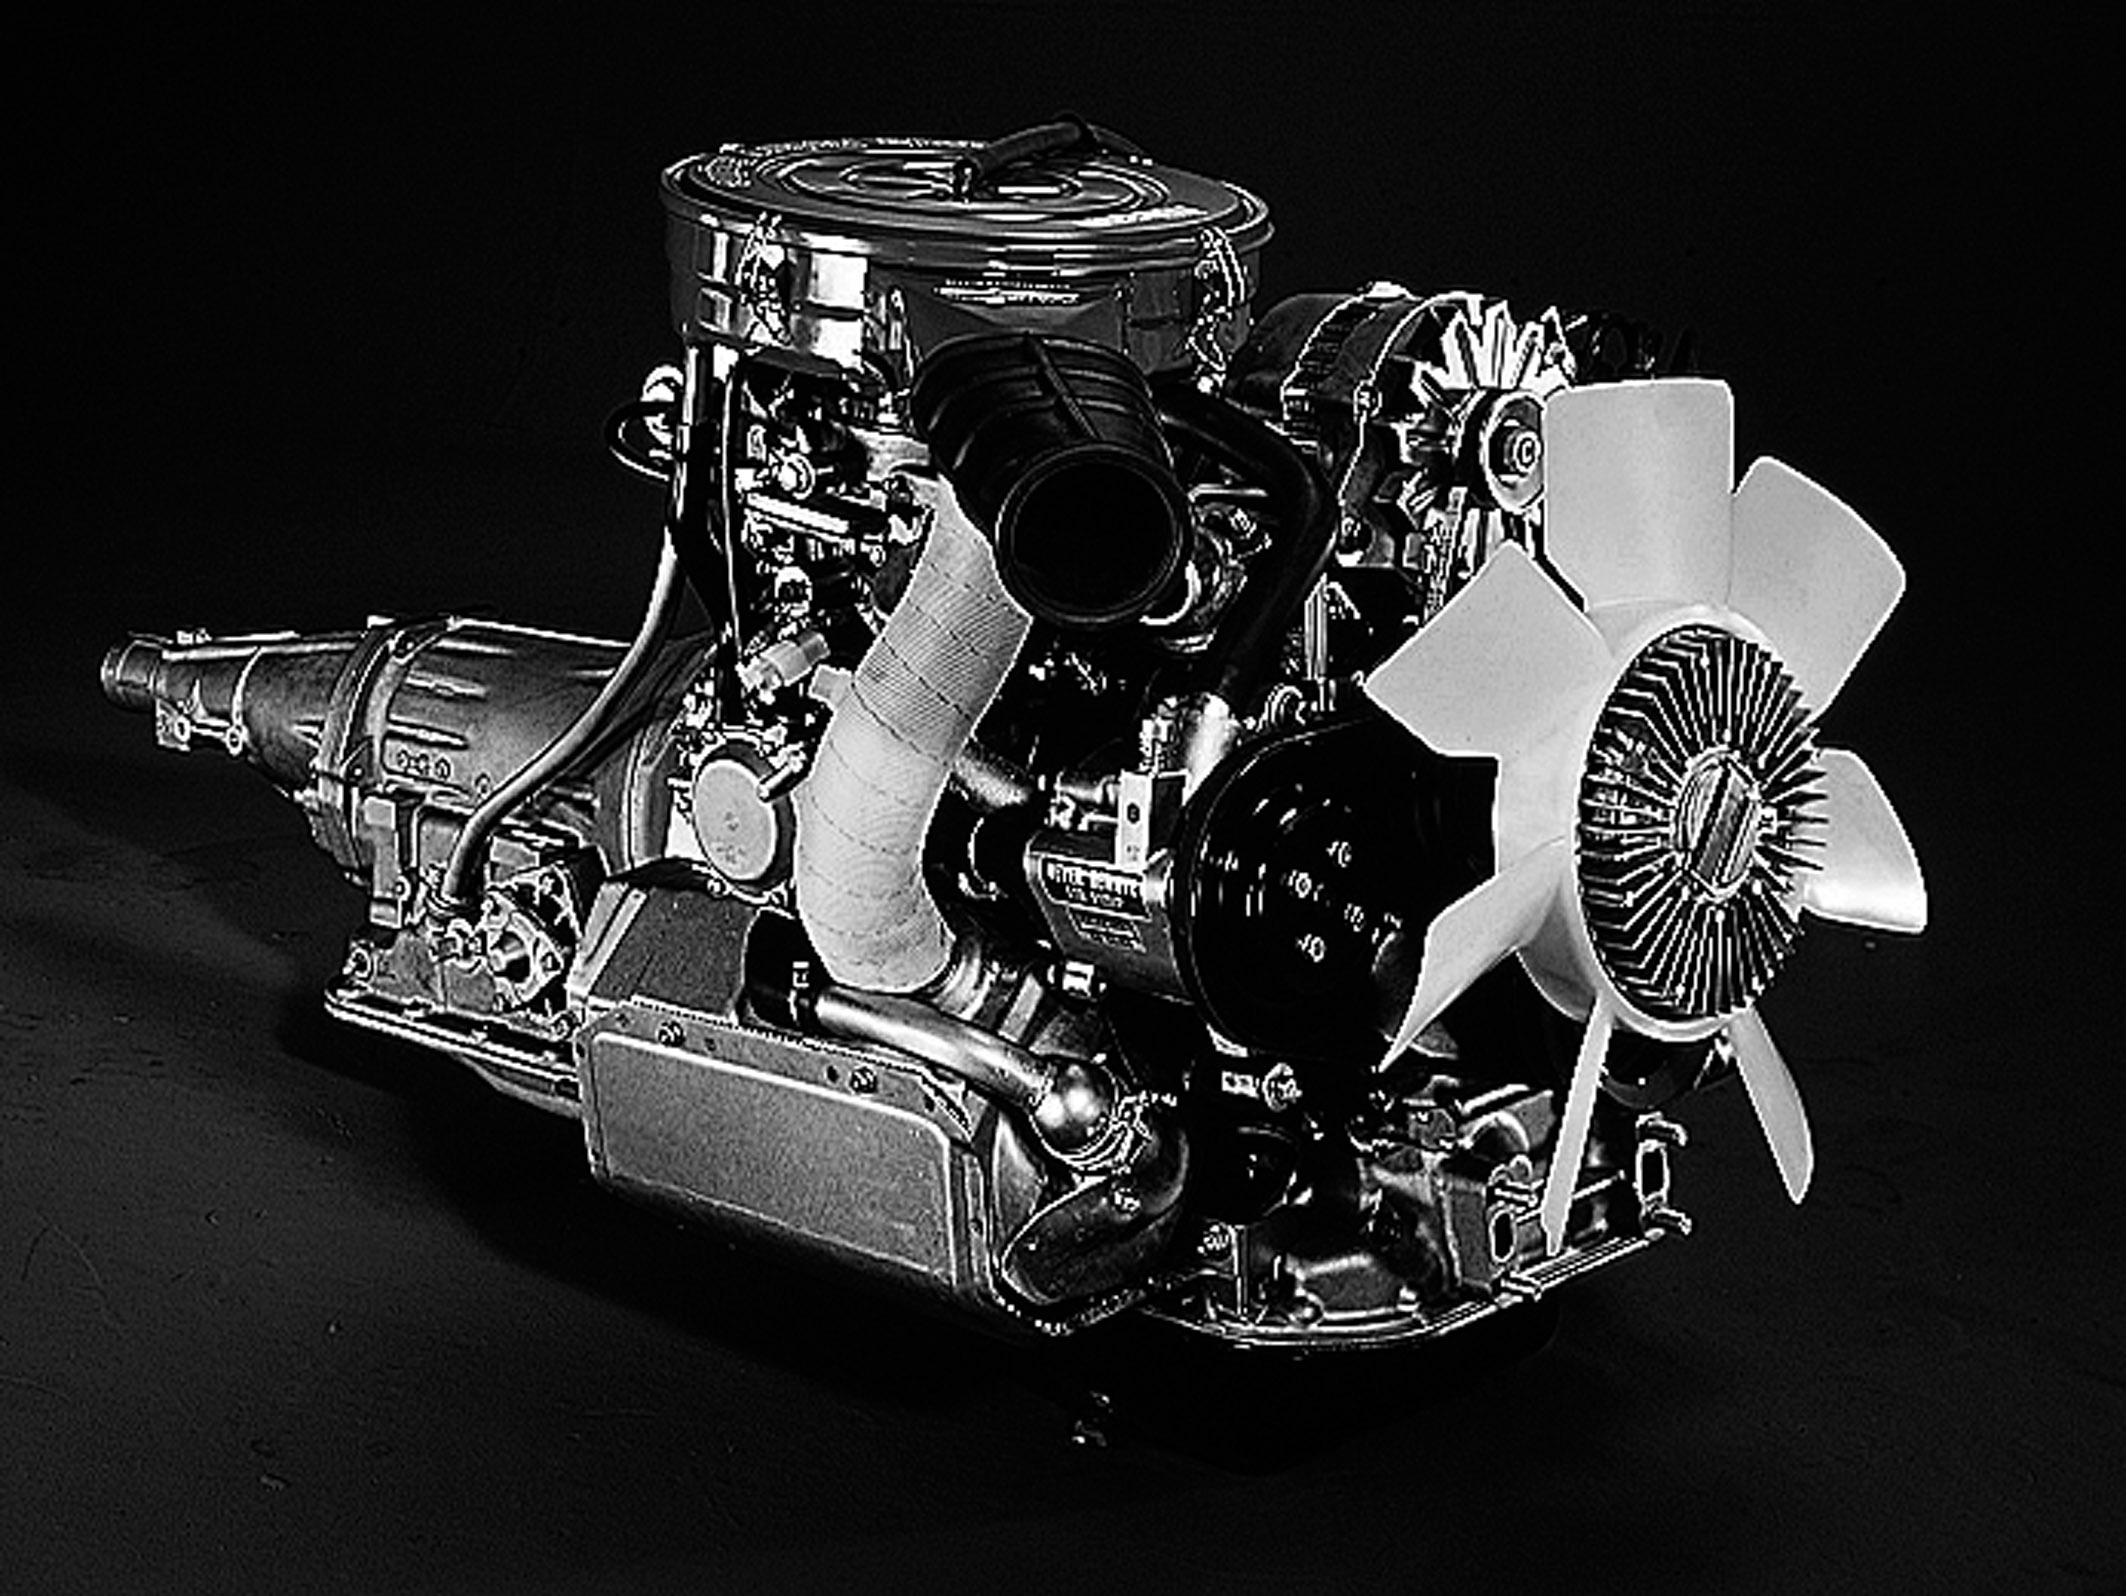 40th 13B Rotary Engine